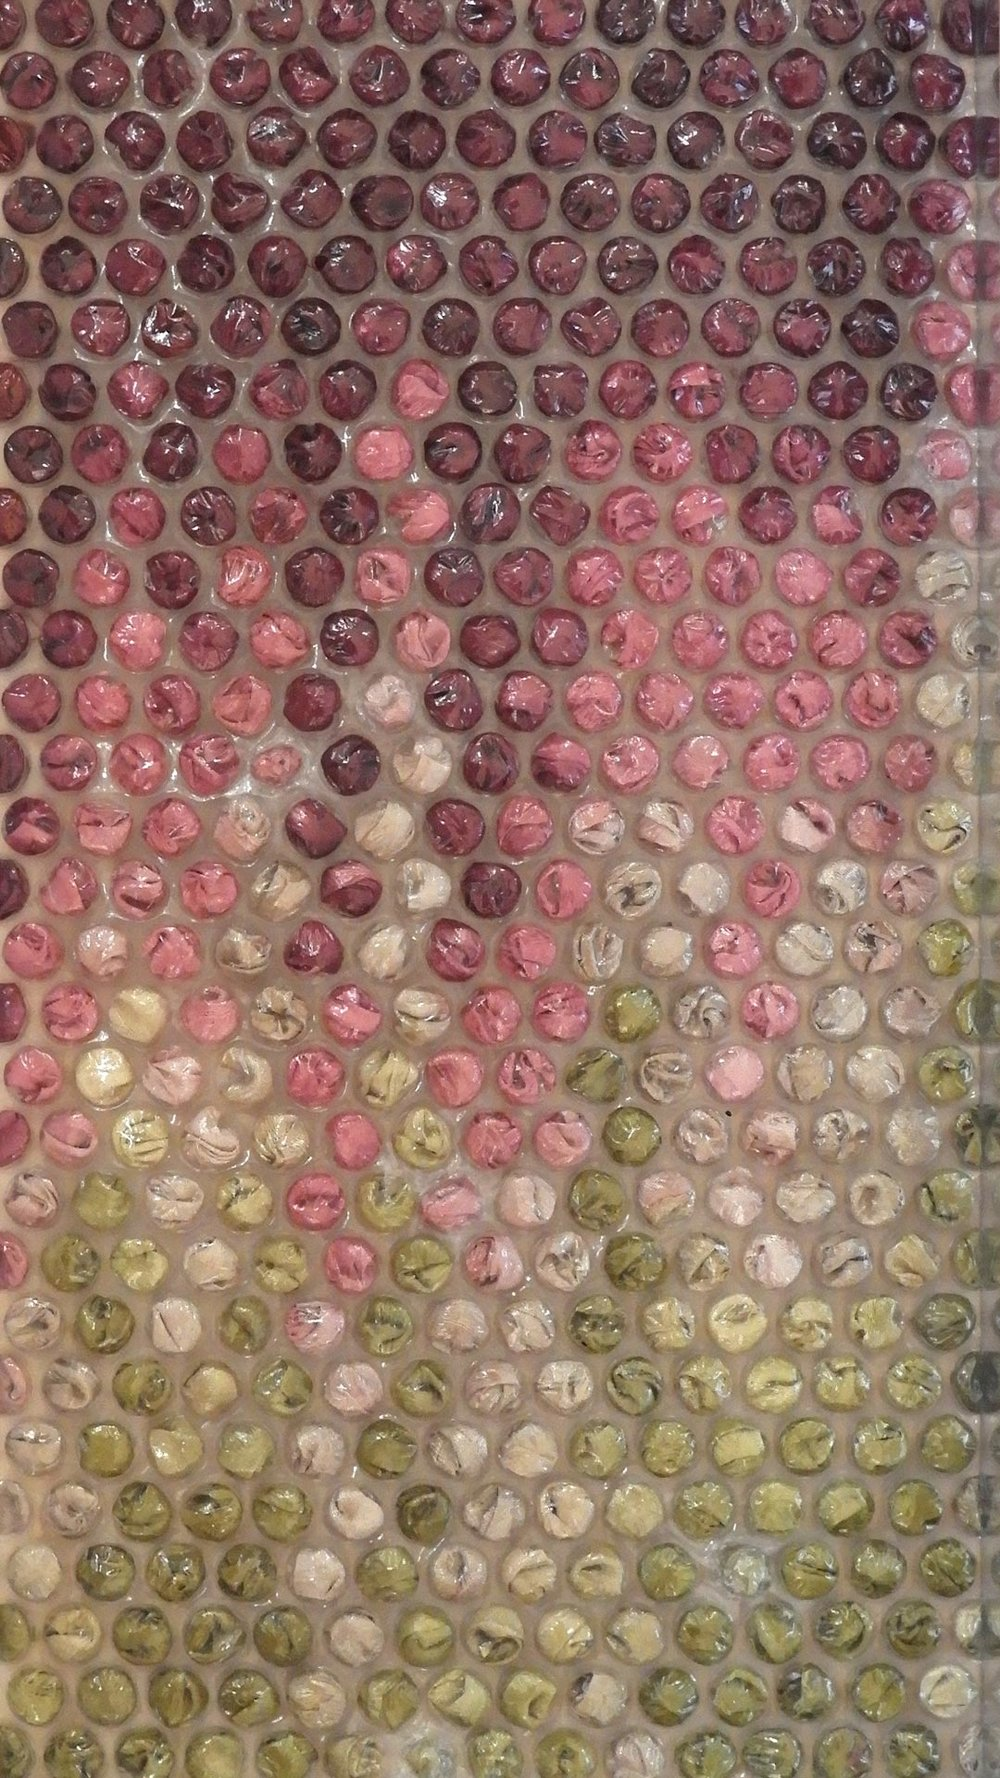 Bubble wrap textile art which features as part of Gail Hawes exhibition ROUND. All artworks featured bubble wrap filled with a variety of textiles including wool, hand made felt, silk fabric. This artwork features multi coloured silk filled into bubbles to create an effect of bougainvillea hanging in a garden